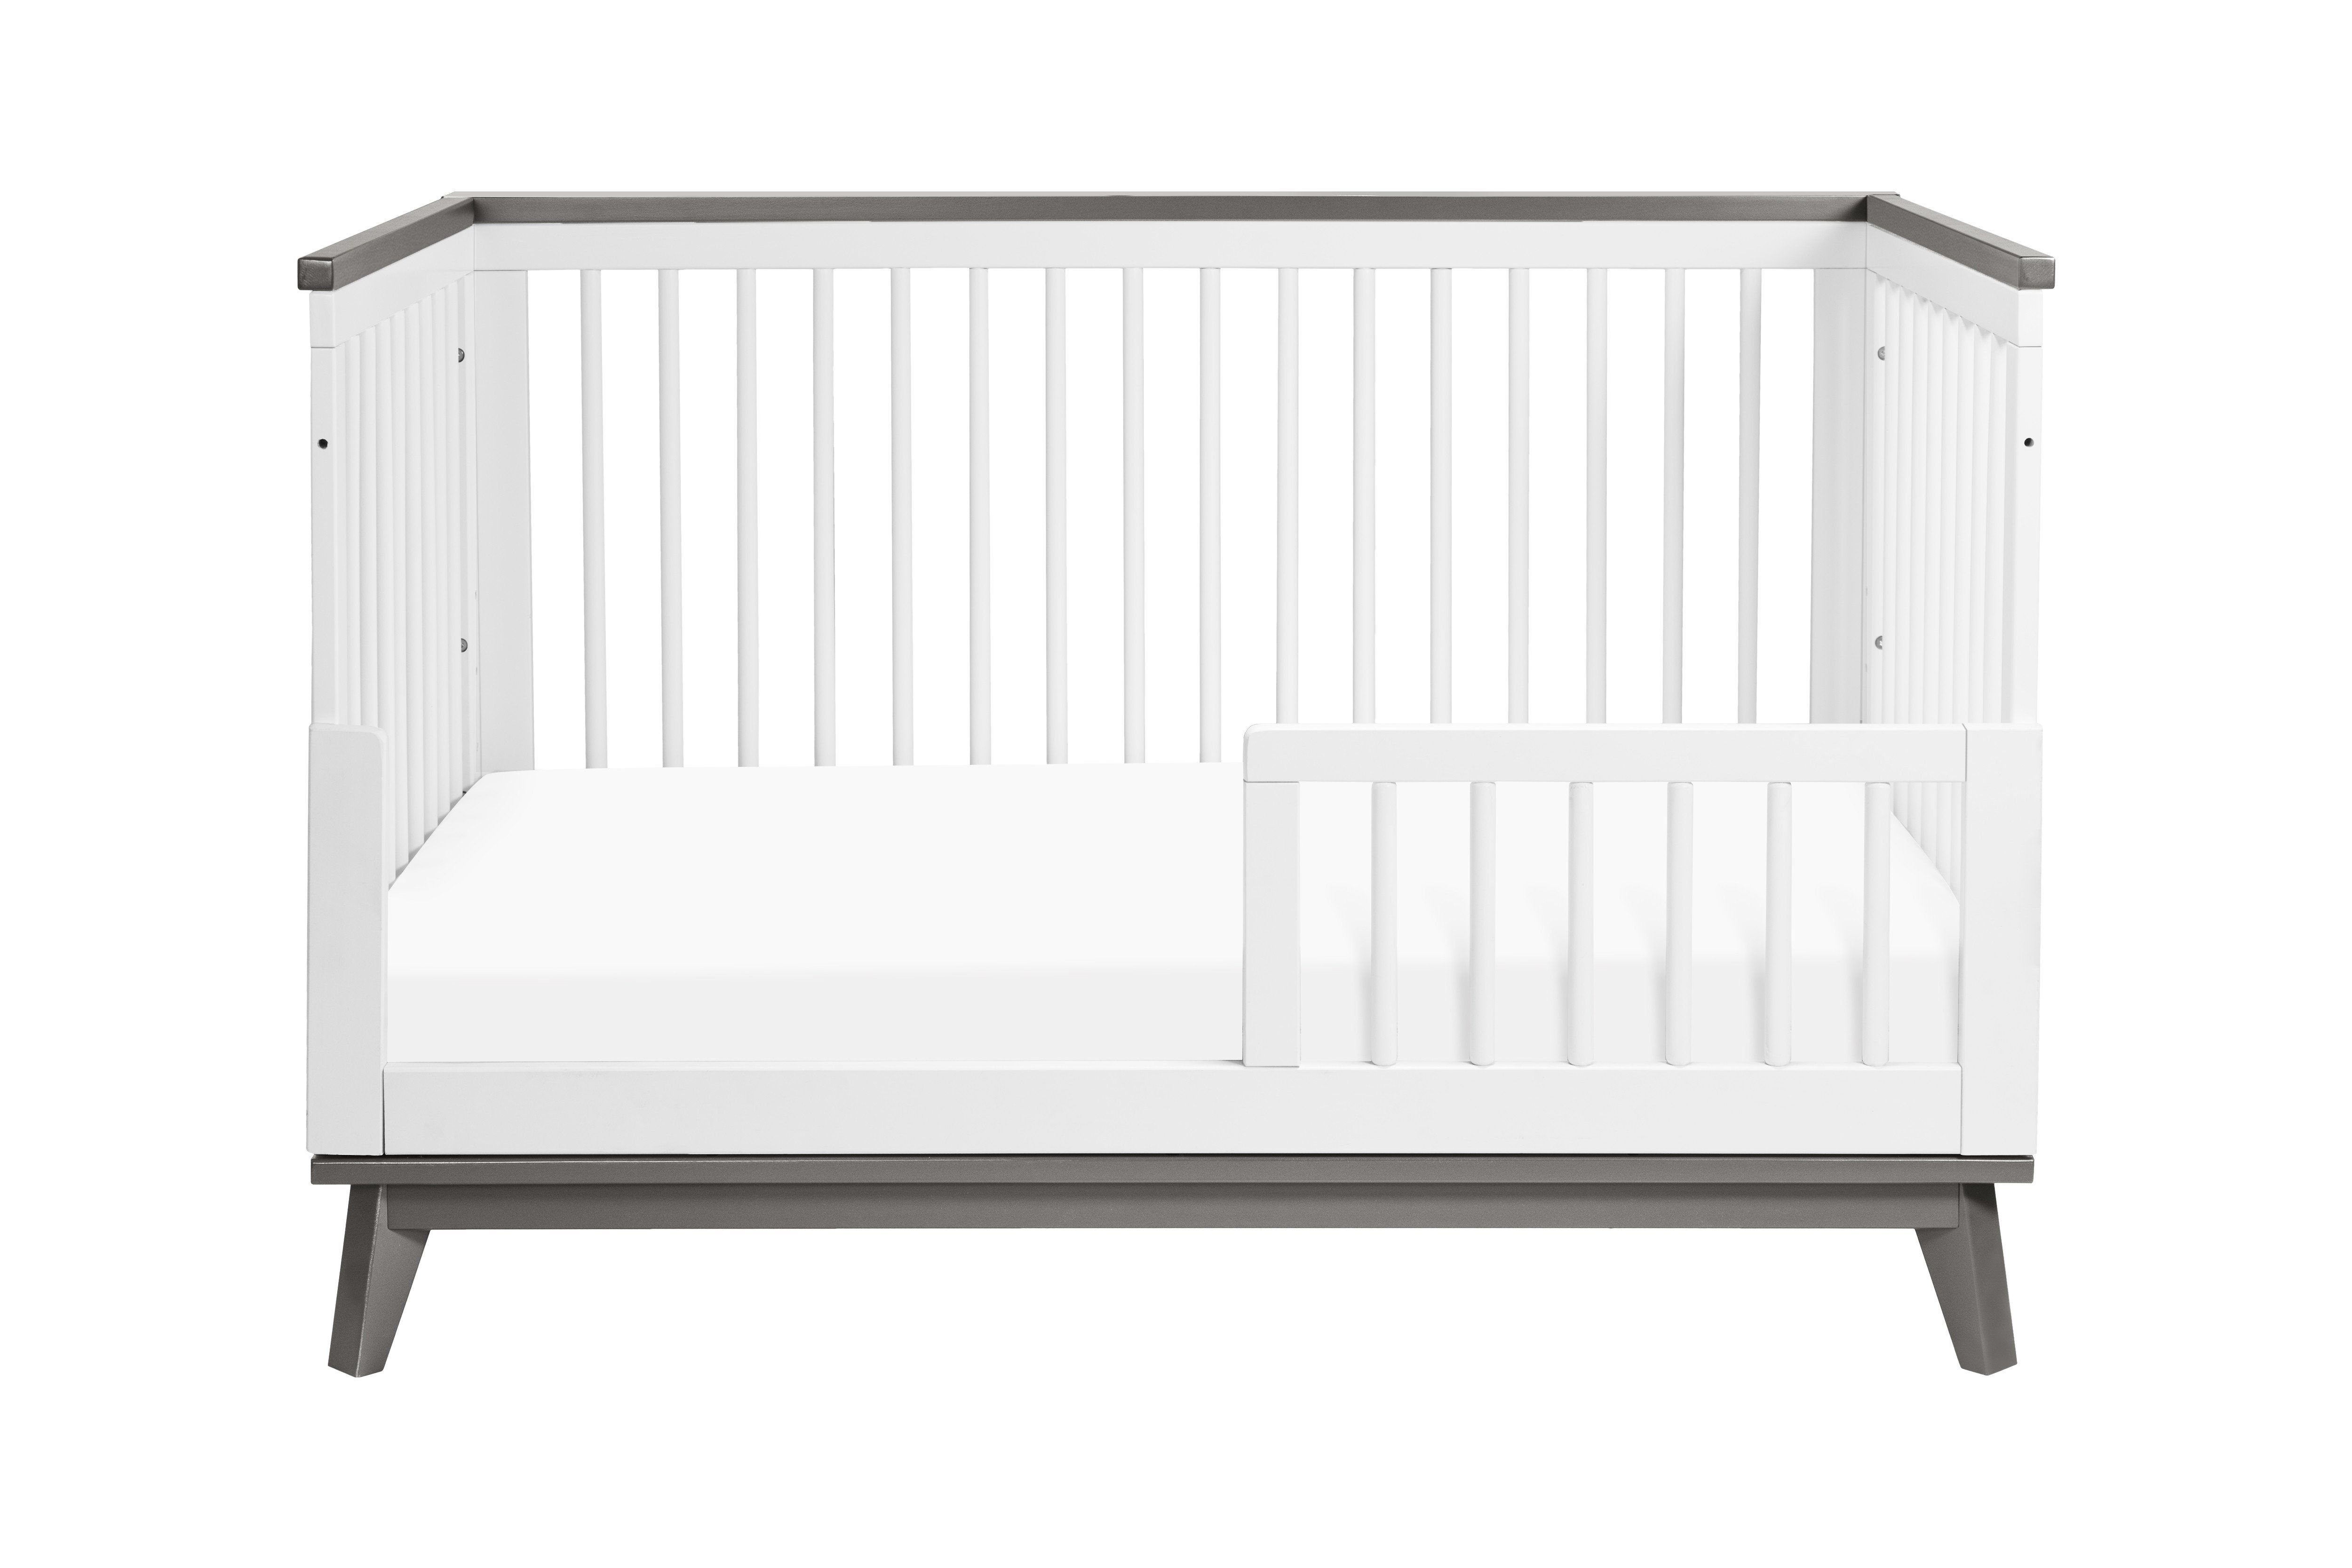 Scoot 3 In 1 Convertible Crib With Toddler Bed Conversion Kit Toddler Bed Convertible Crib Cribs